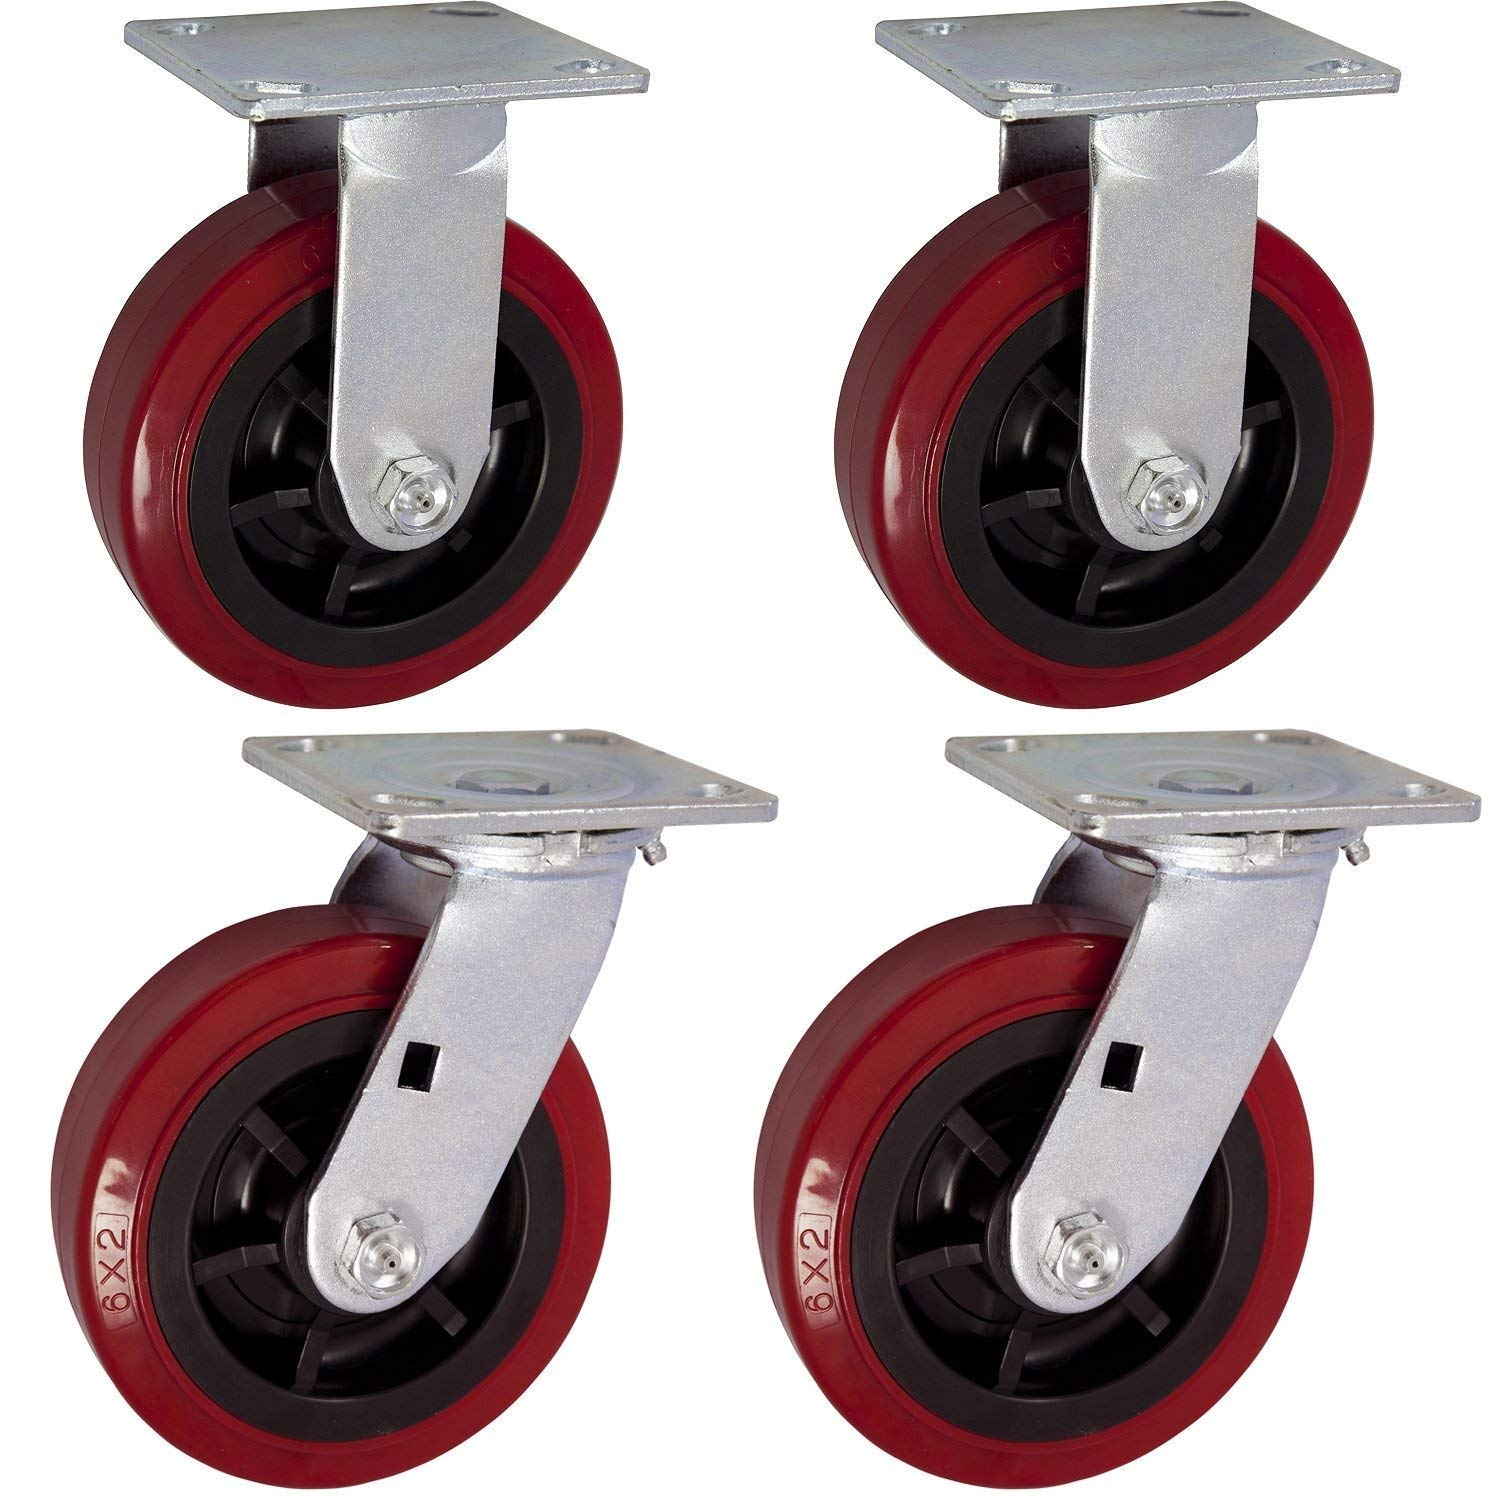 6'' X 2'' Heavy Duty Caster Set of 4-2 Swivel Casters and 2 Rigid Casters - 3600 lbs Per Set of 4 - (4 Pack) - Dark red Polyurethane on Black Polyolefin Core - CasterHQ Brand Casters by CasterHQ (Image #1)